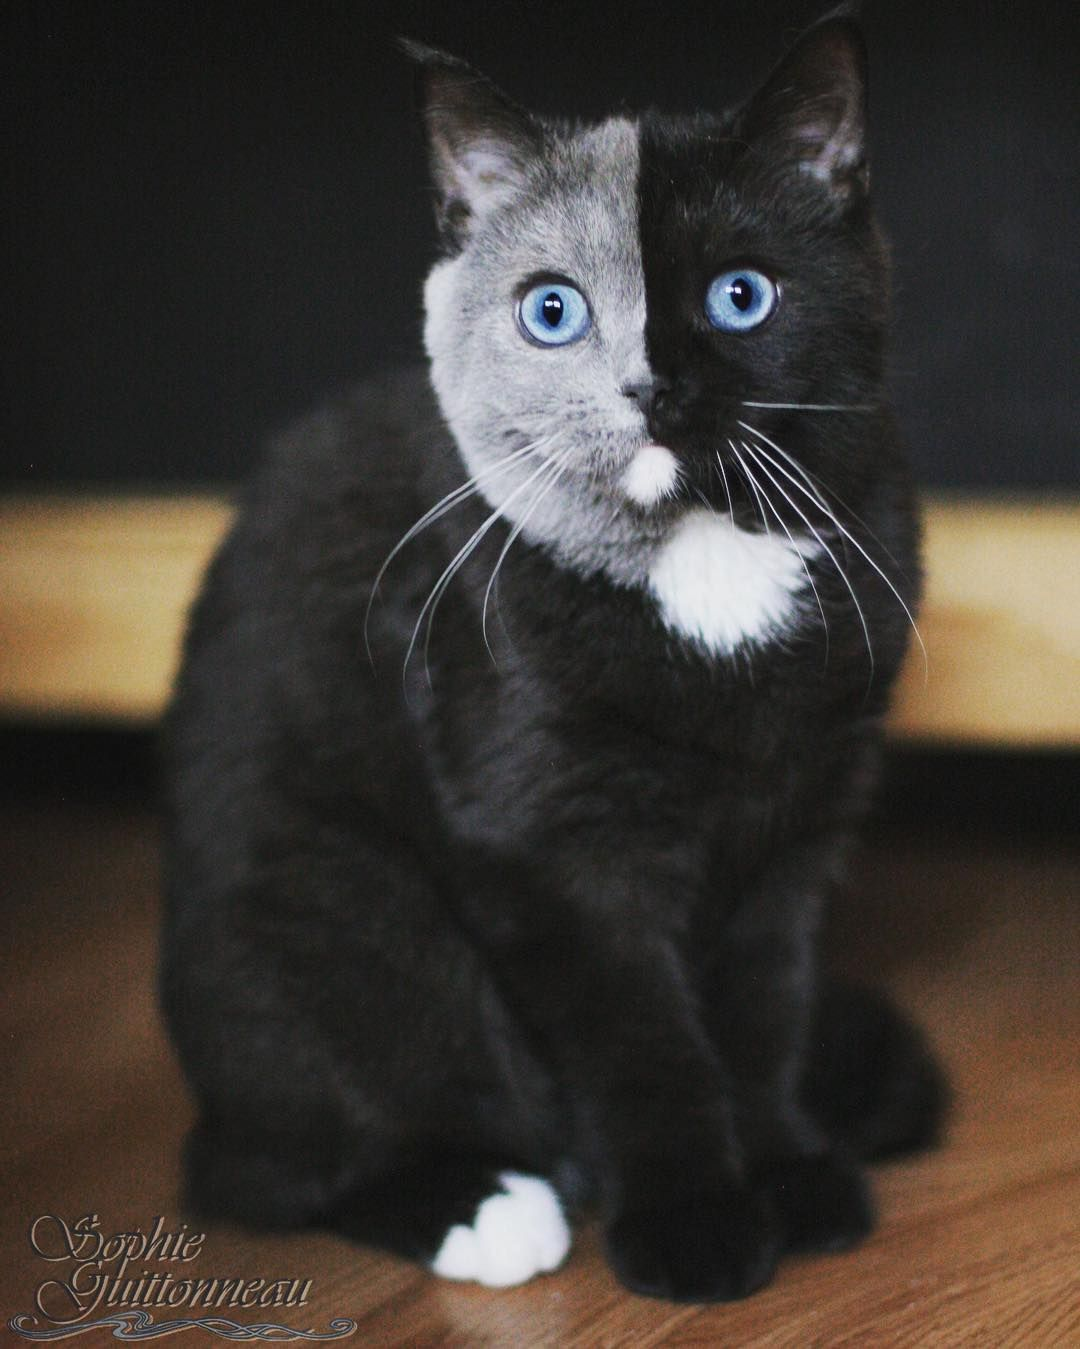 Two-faced cats are a rare sight, and their striking features continue to captivate the world over. A young cat named Narnia is quickly winning the hearts of the internet. Based in France, the British Shorthair is nearly a year old and has already grown into a handsome boy with a half black, half gray face.